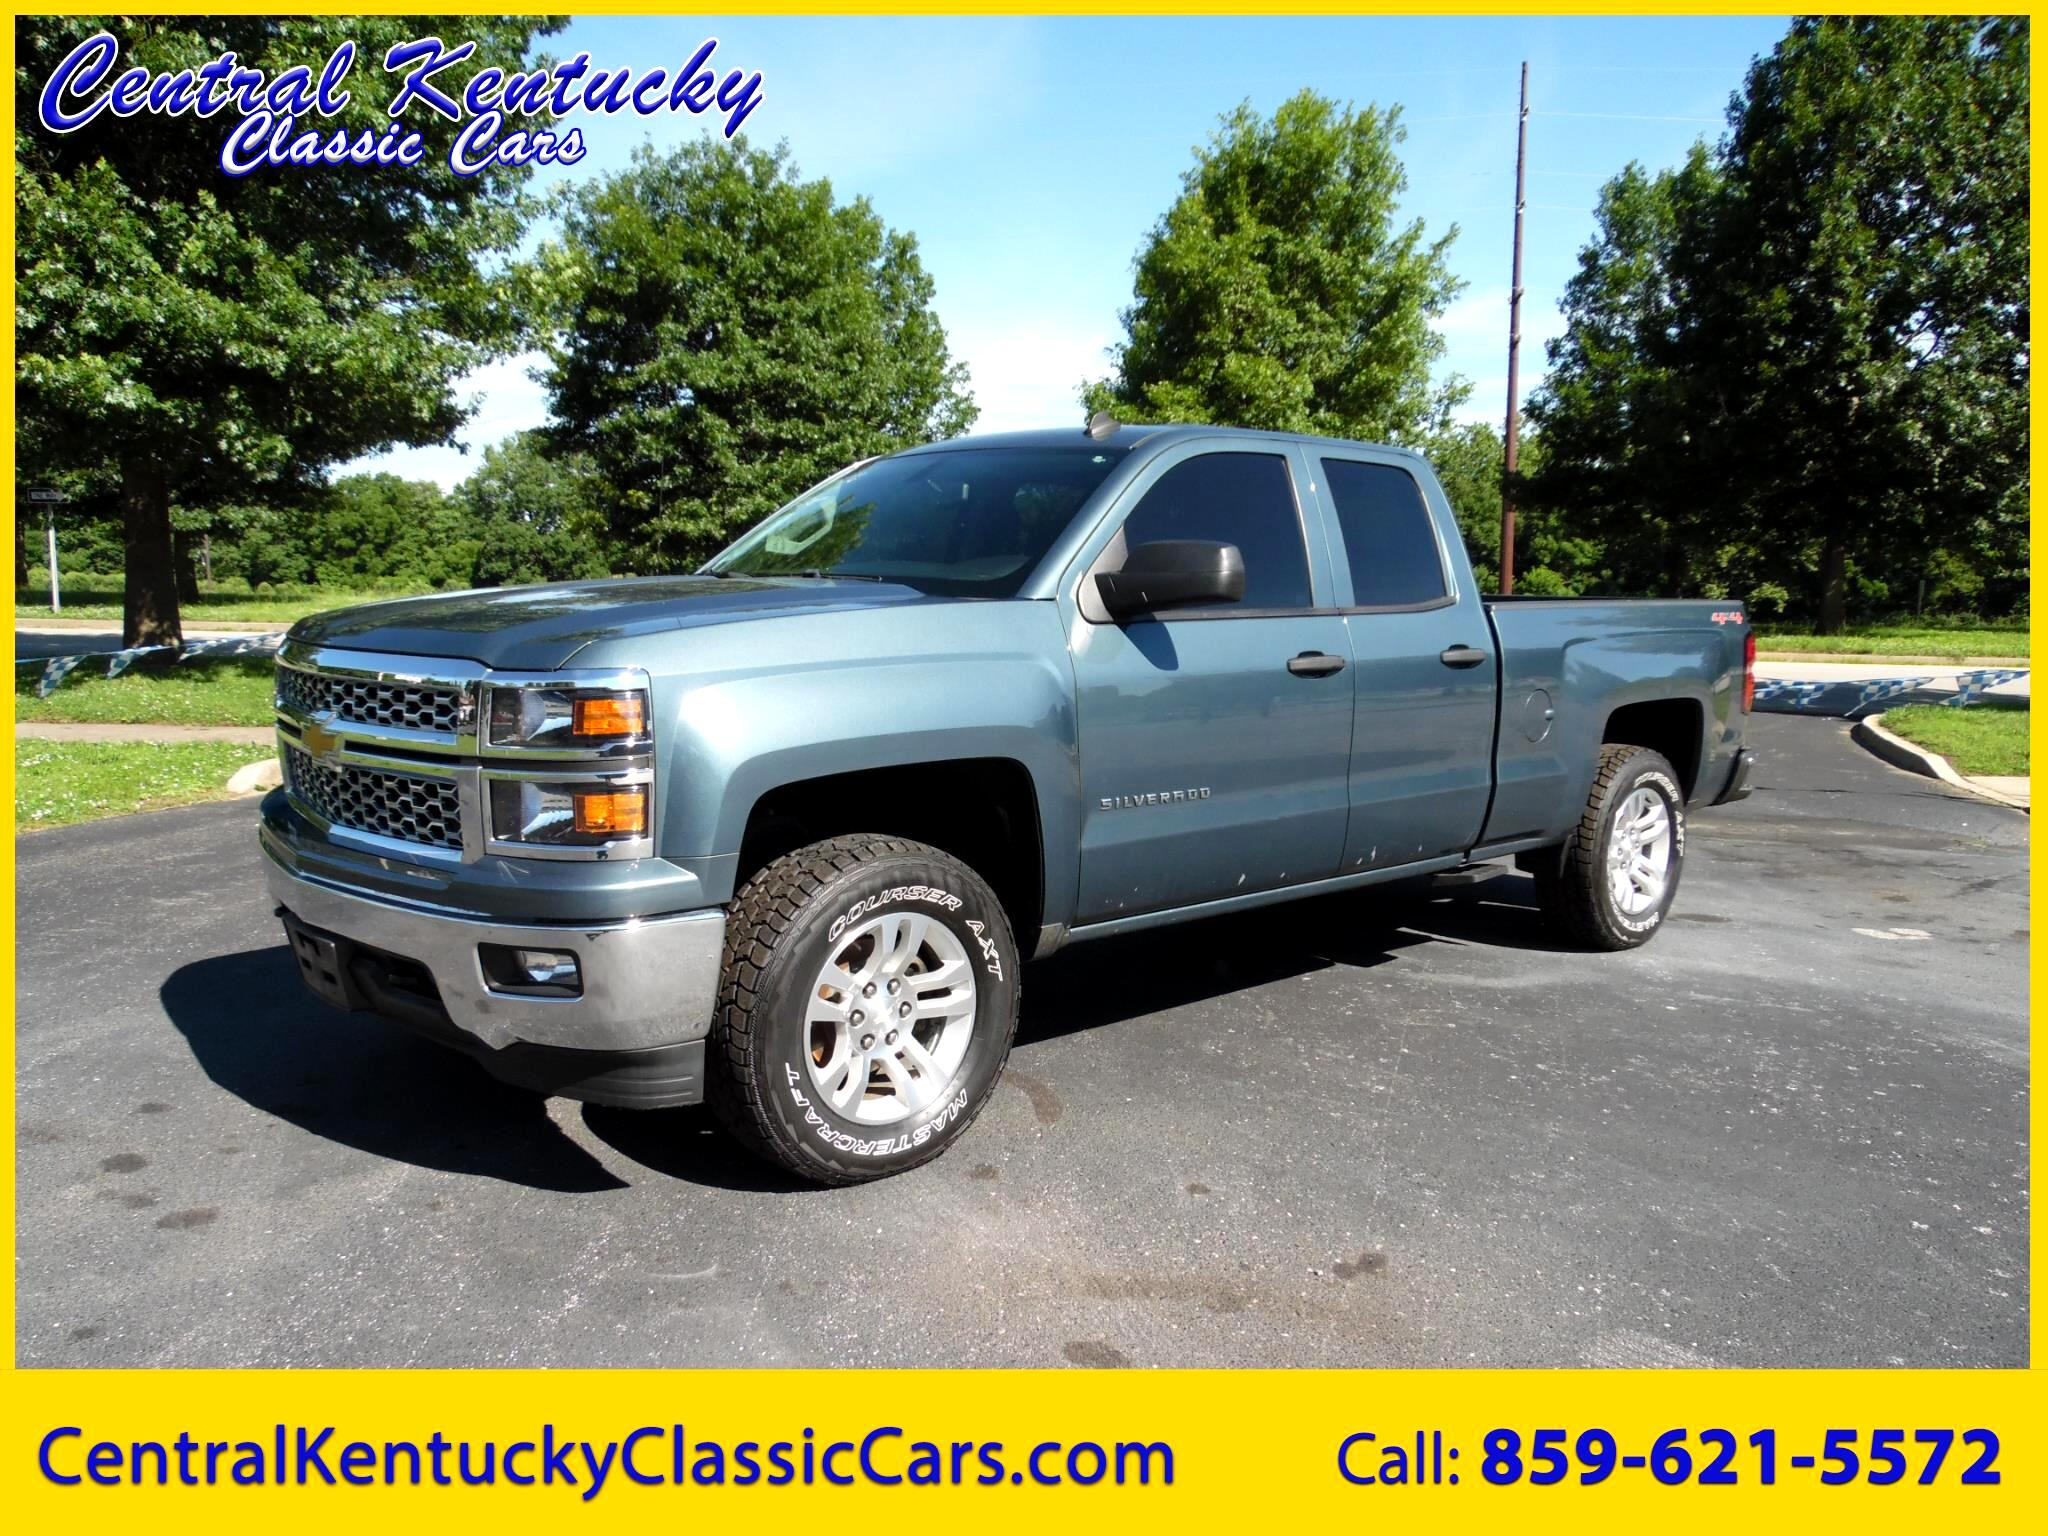 Used 2014 Chevrolet Silverado 1500 2lt Double Cab 4wd For Sale In